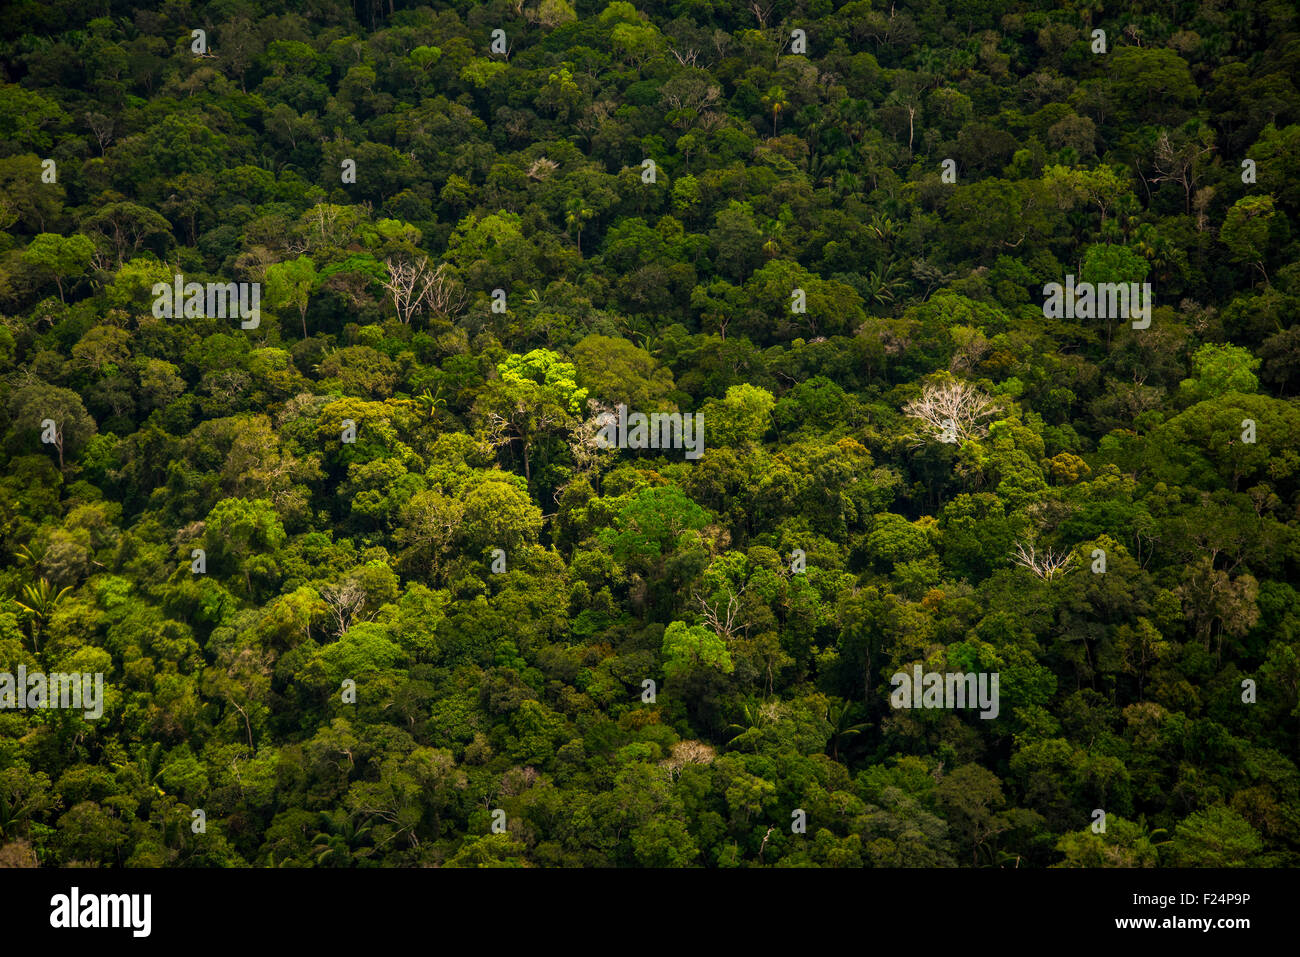 Amazon Rainforest aerial. Primary forest between Iquitos, Peru and Brazilian border - Stock Image